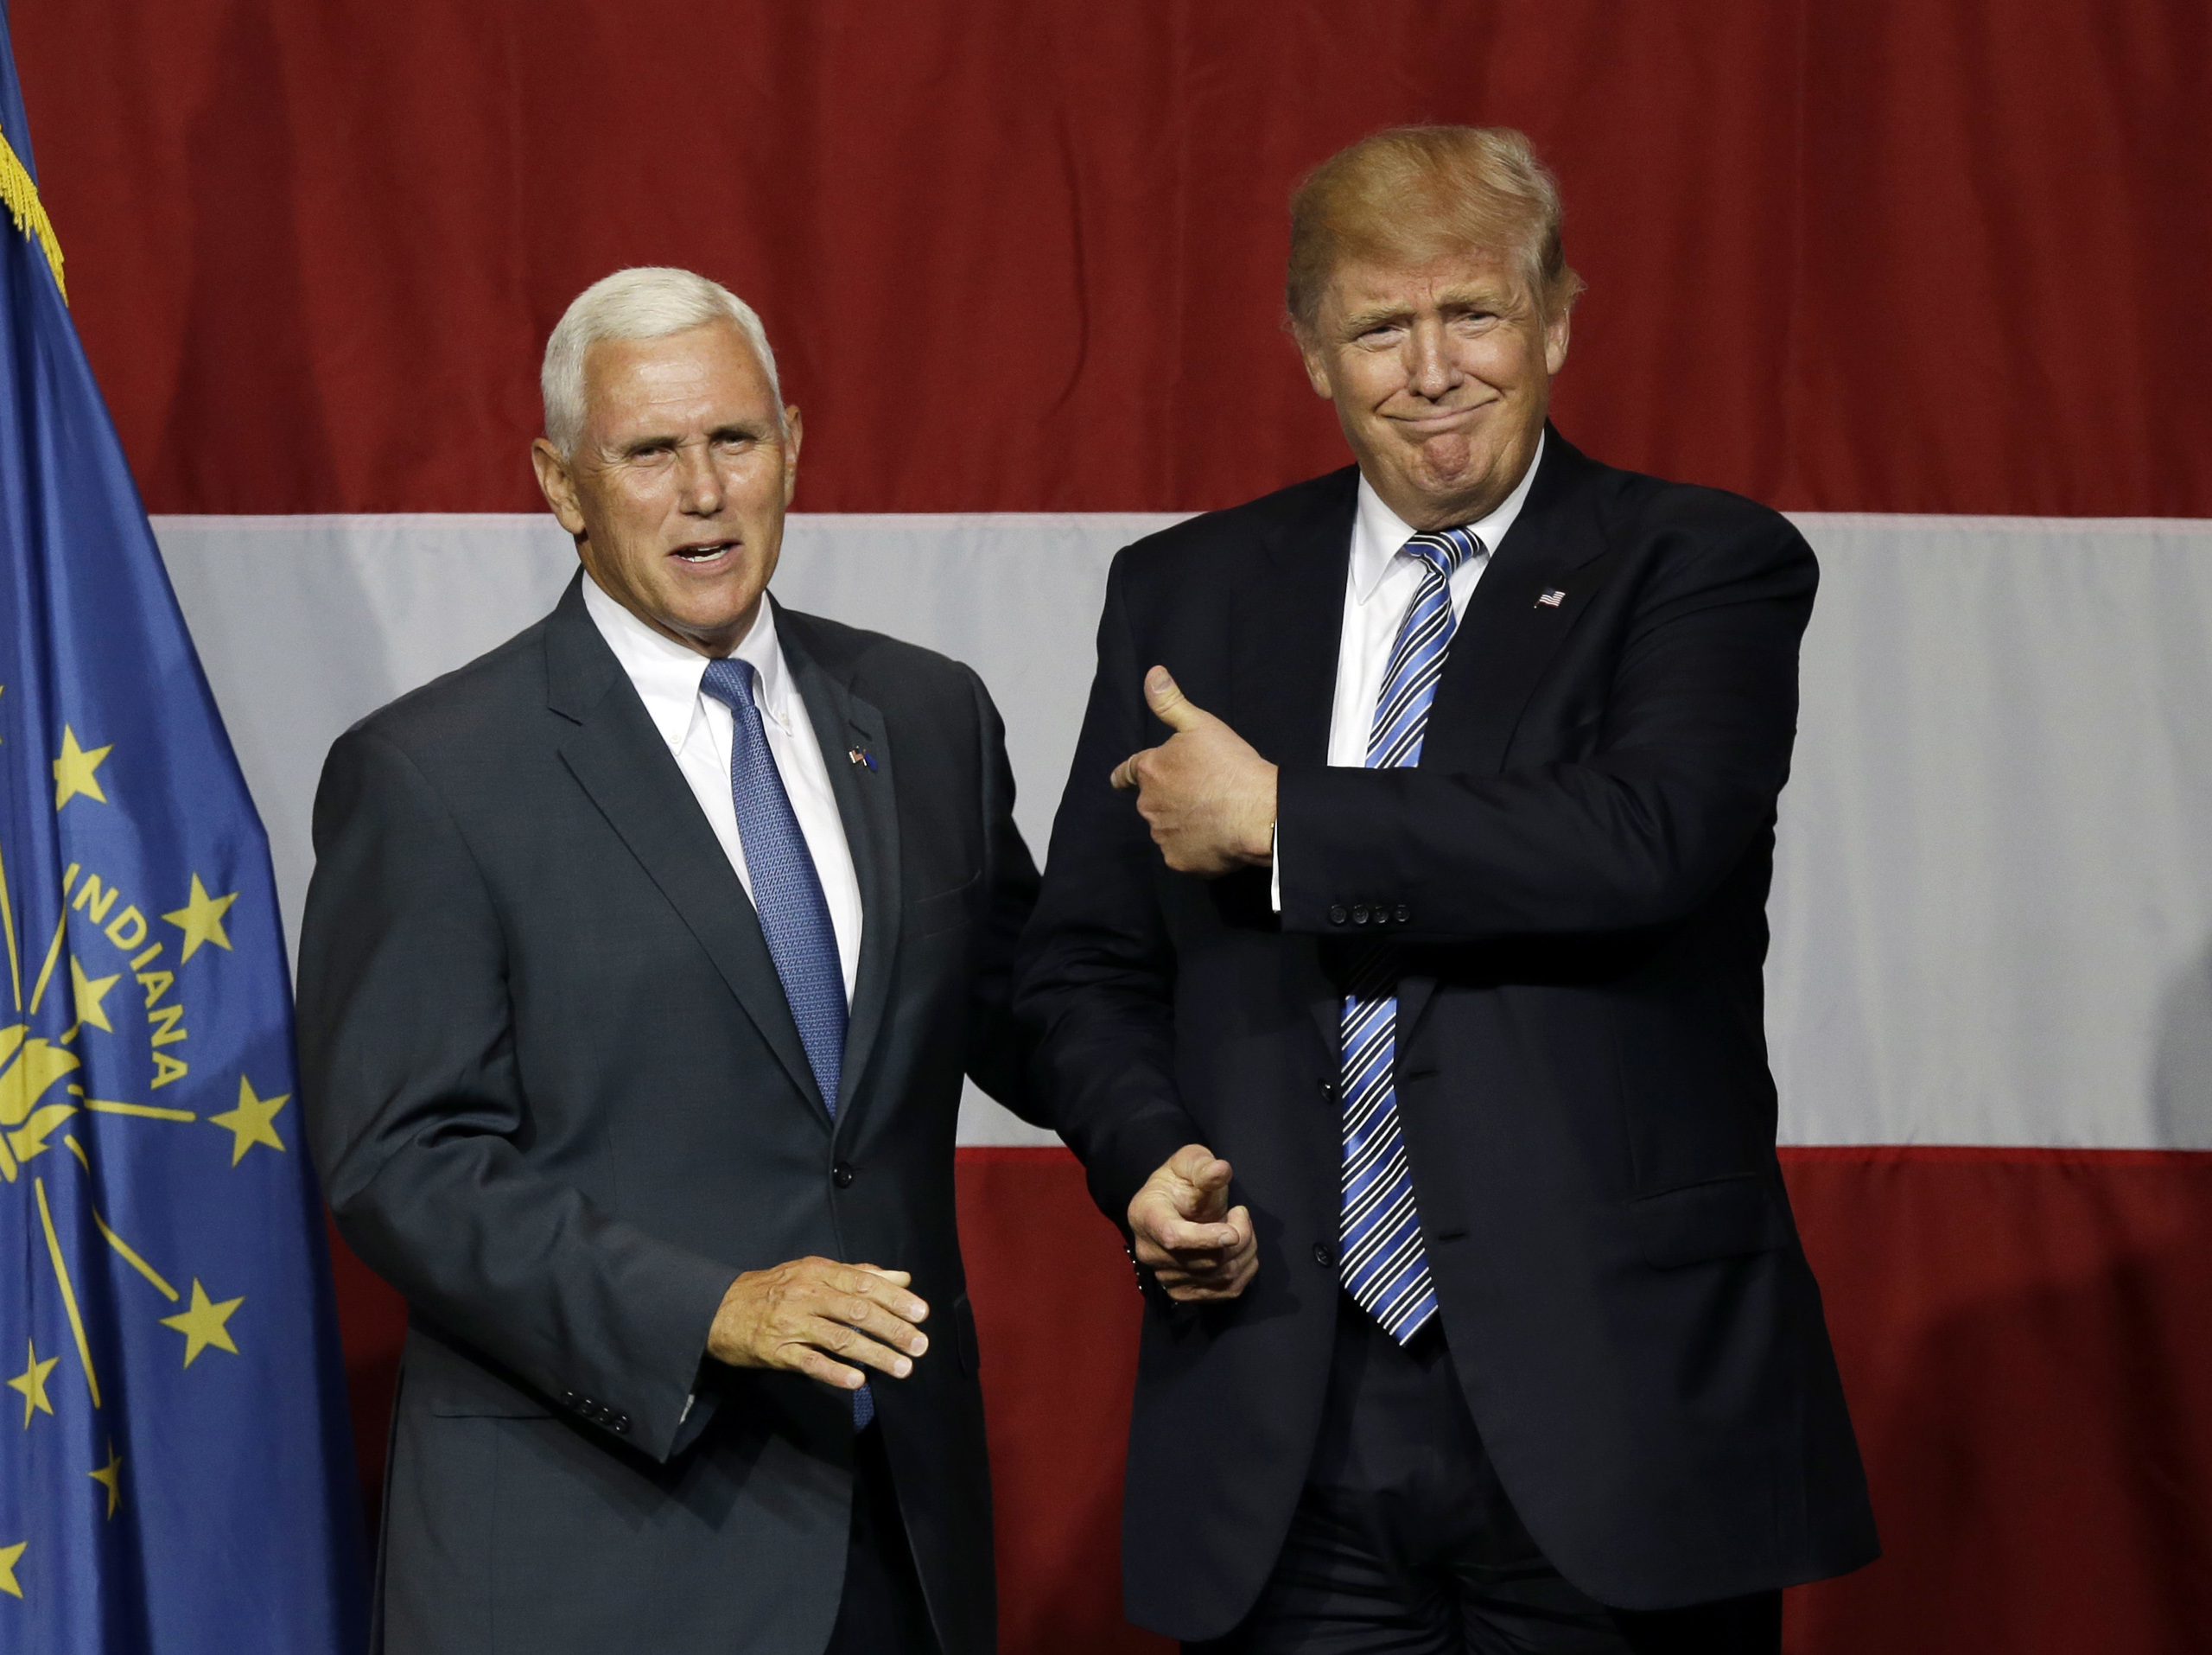 President Trump and Vice President Pence picture